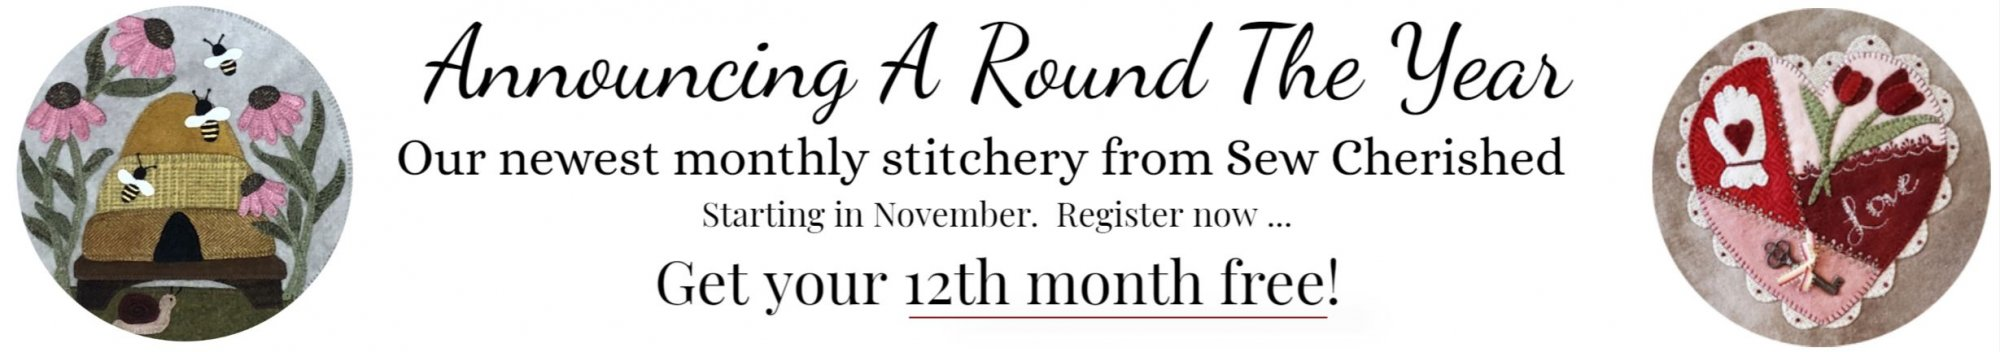 a Round The Year.  Sign up now to get 12th month free